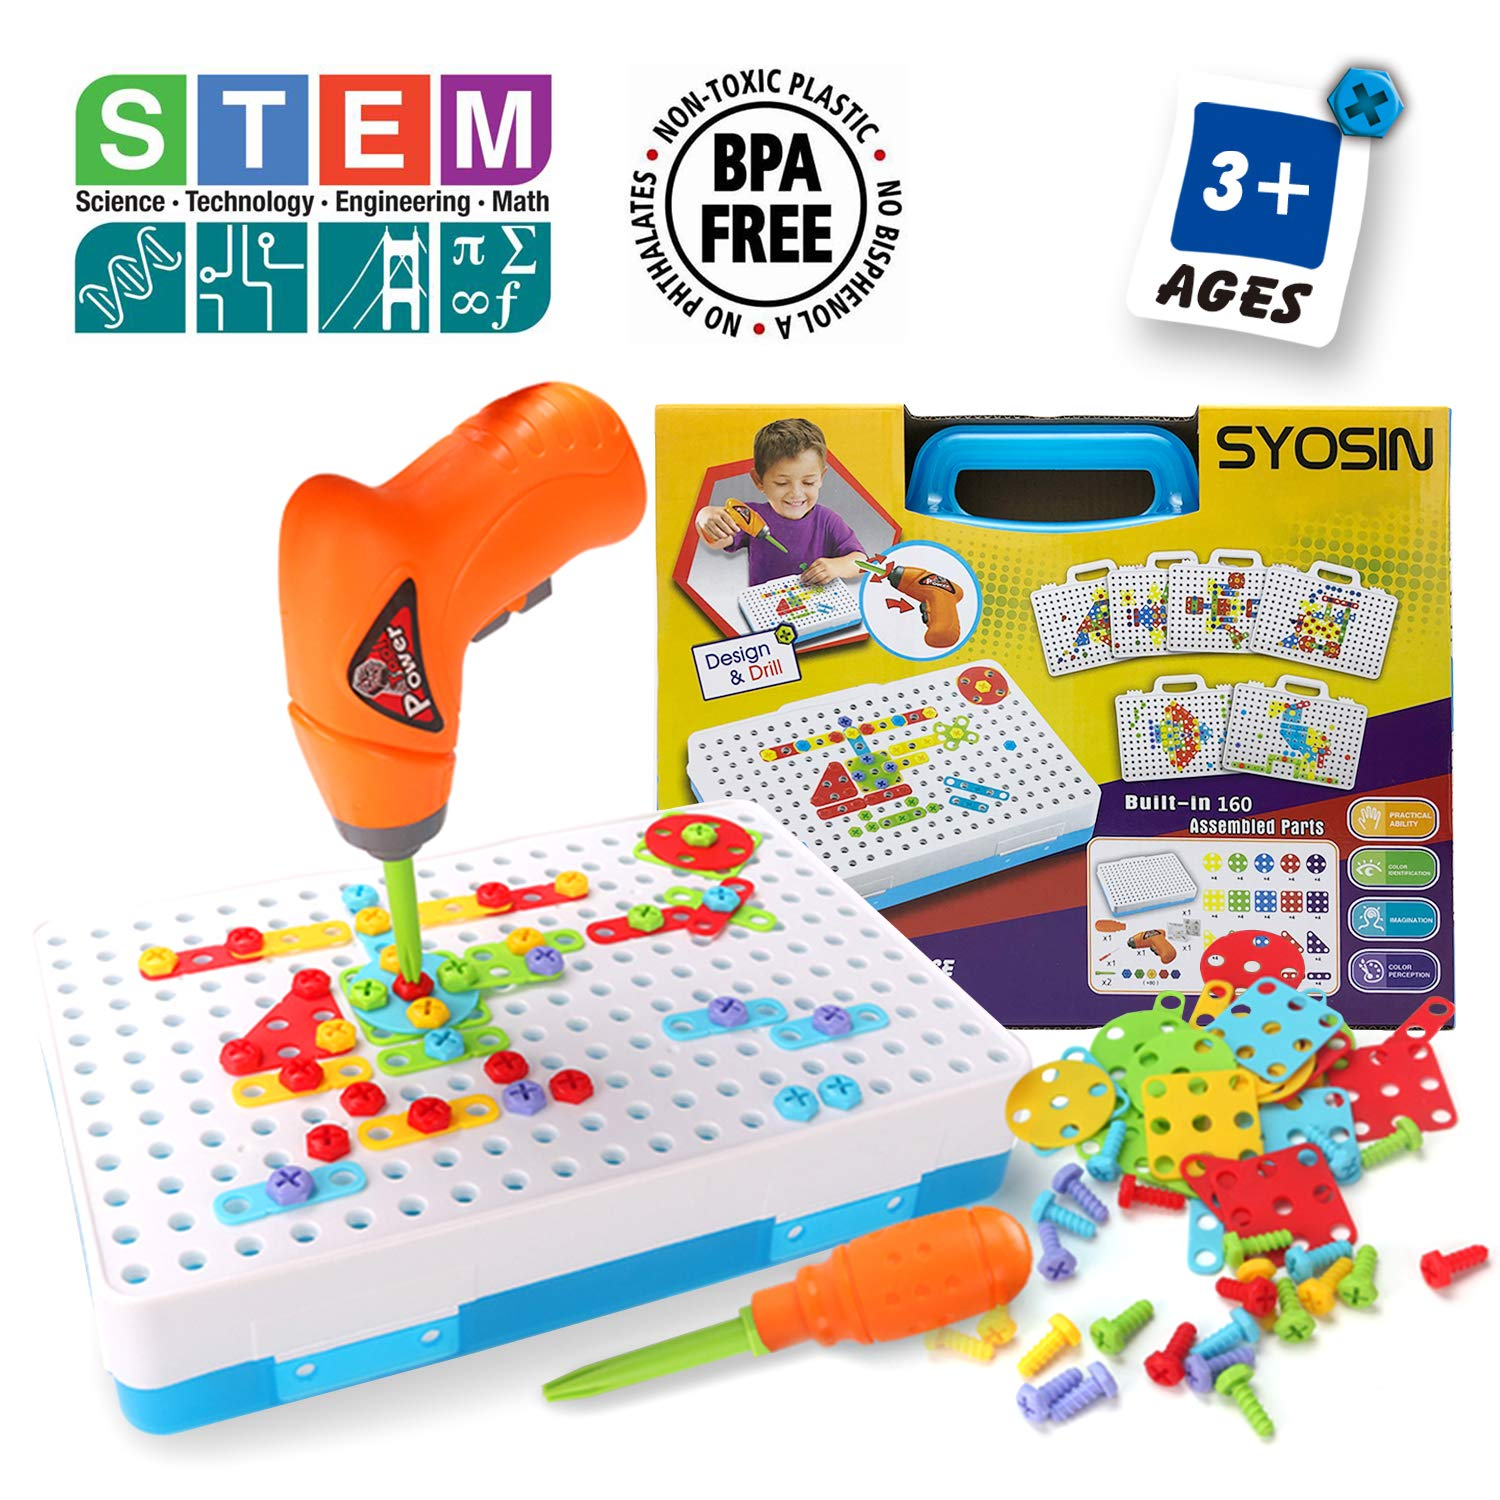 SYOSIN Design and Drill Play Set Creative Puzzle Assembly DIY STEM Educational Toys Building Blocks 160 Pieces for Kids